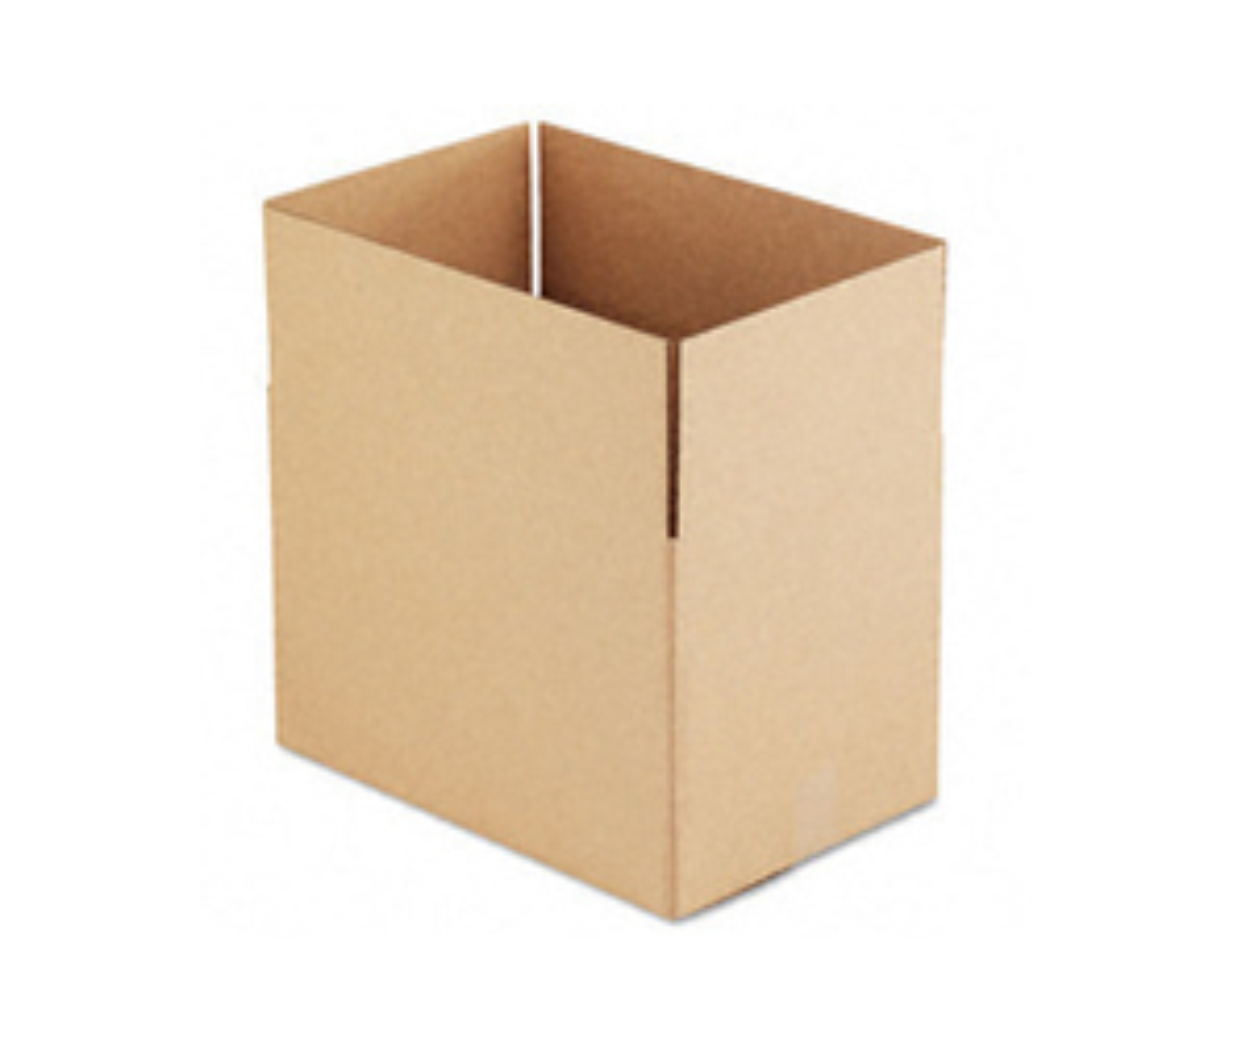 corrugated box industry Rainbow packaging has emerged as one of the reputed corrugated box manufacturers in mumbai bespoke manufacturer of corrugated boxes, brown boxes, cardboard & carton boxes with a wide range of sizes.